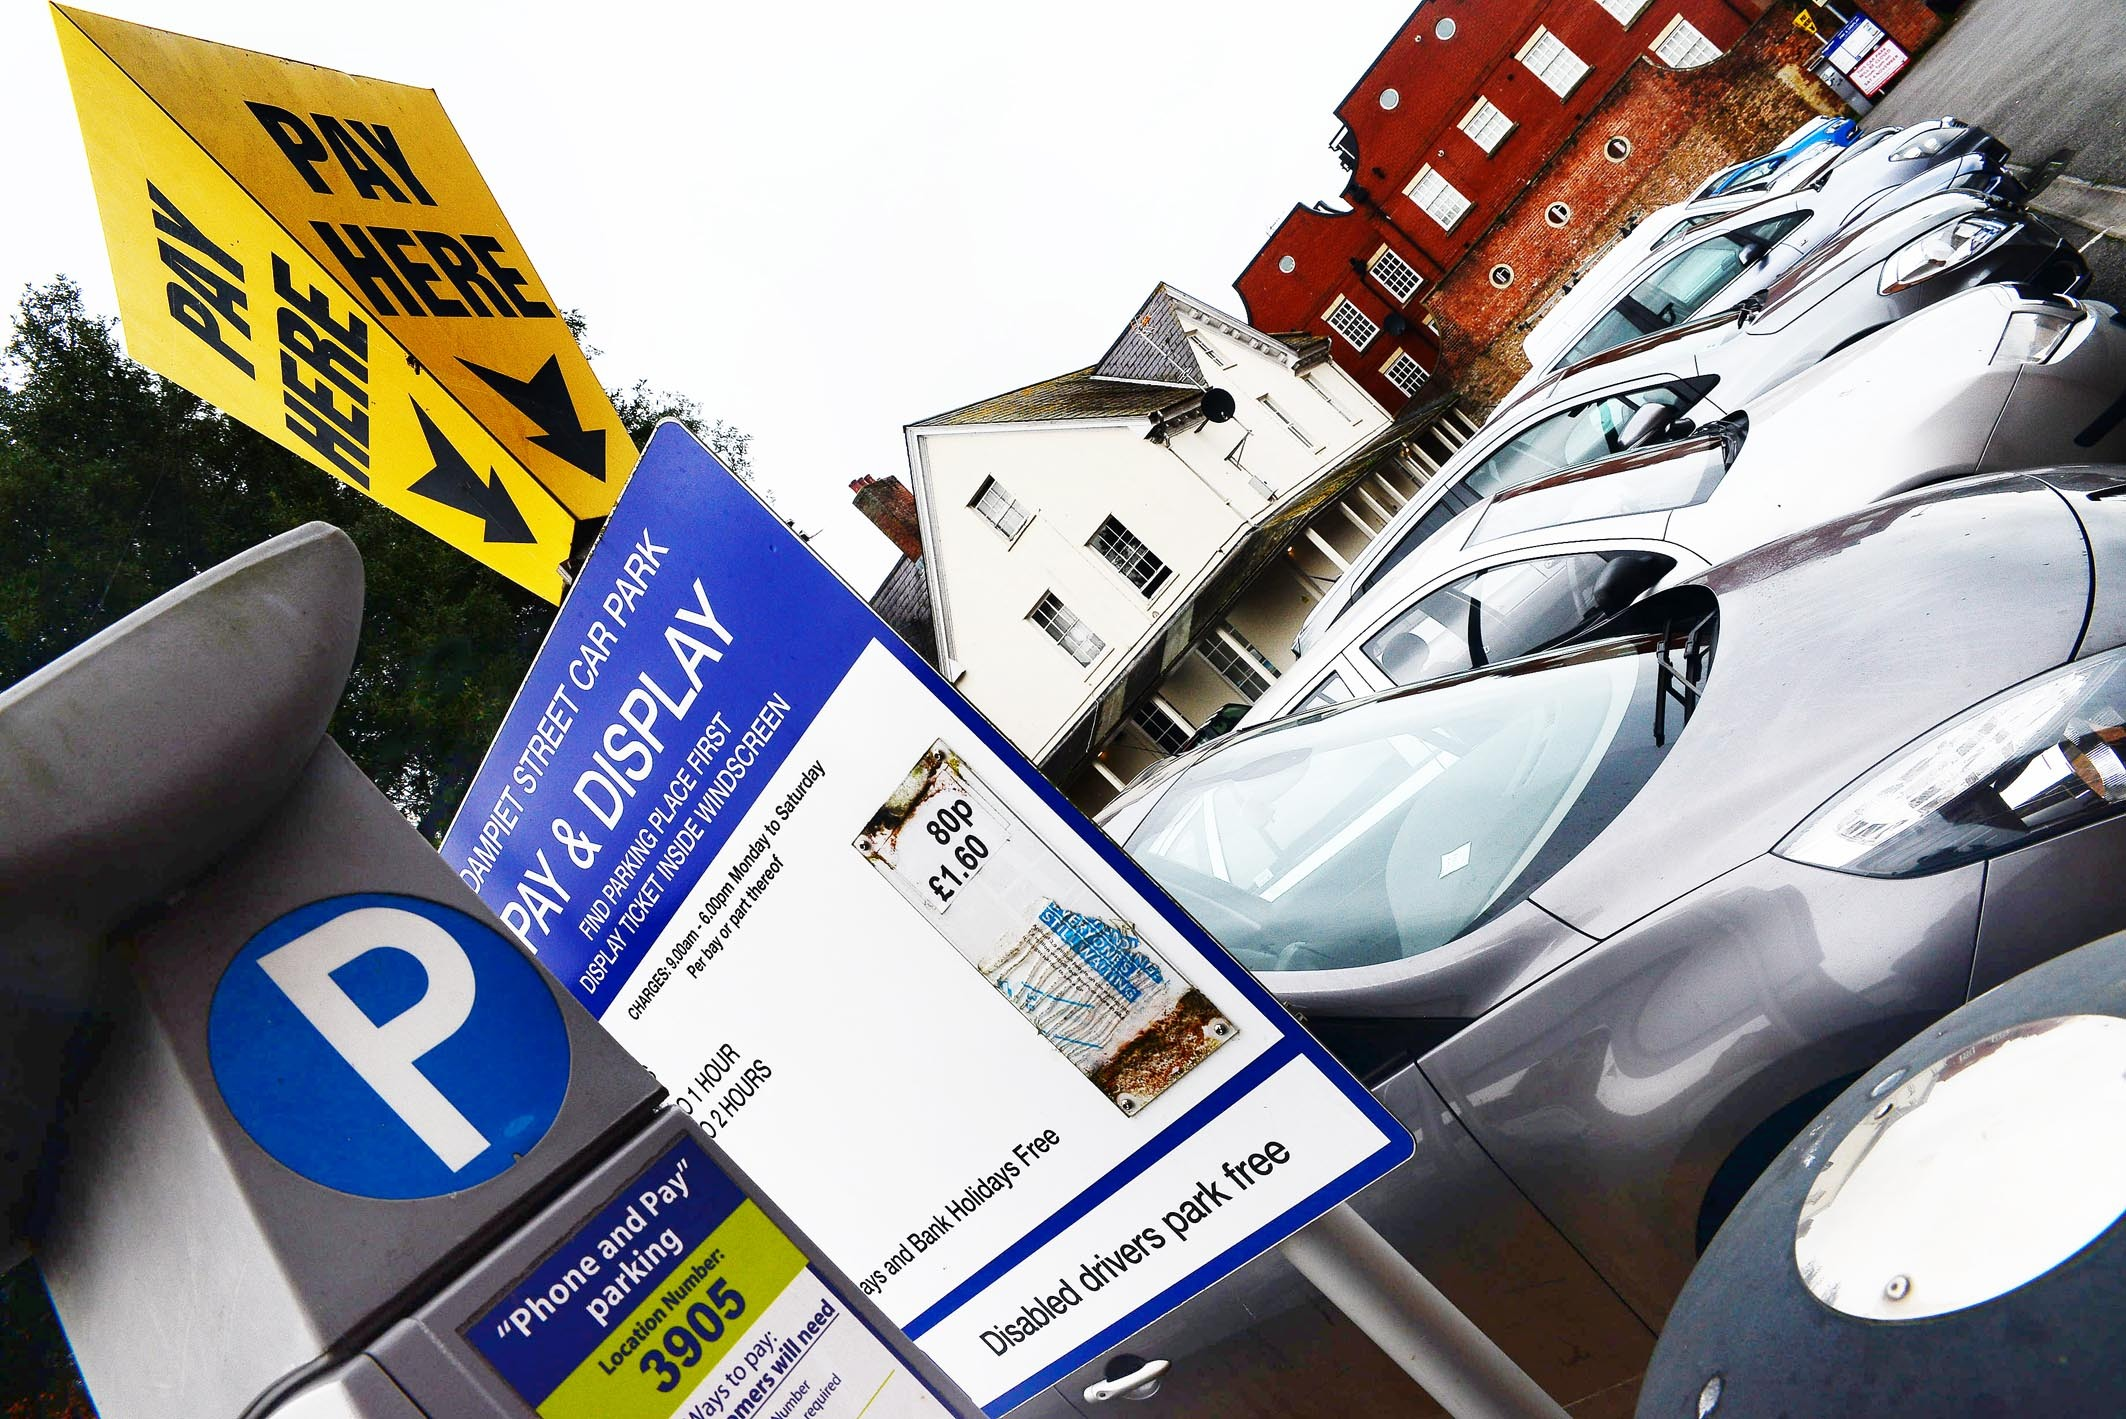 FREE: Parking will be free in all Sedgemoor District Council-run car parks